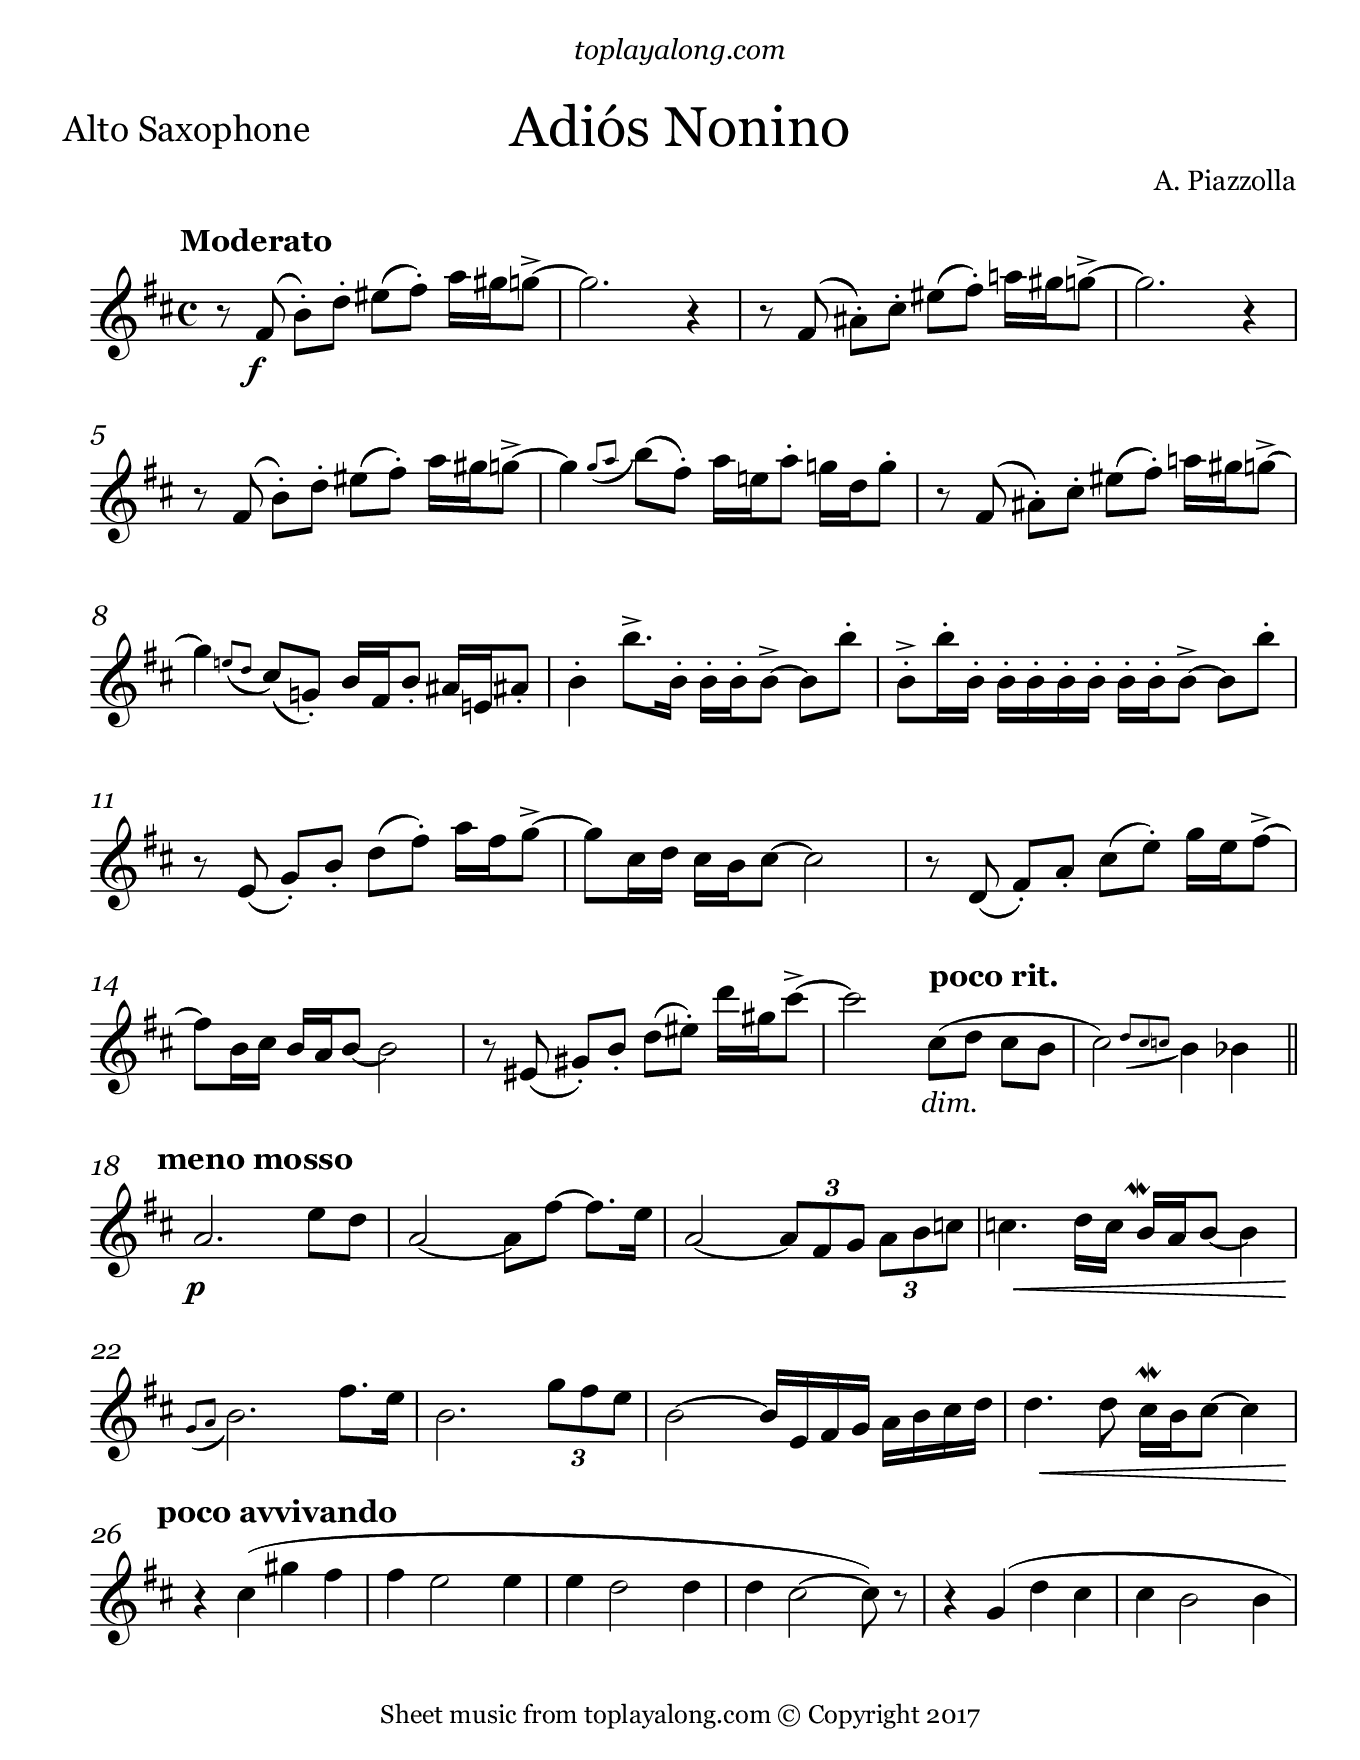 Adiós Nonino by Piazzolla. Sheet music for Alto Sax, page 1.